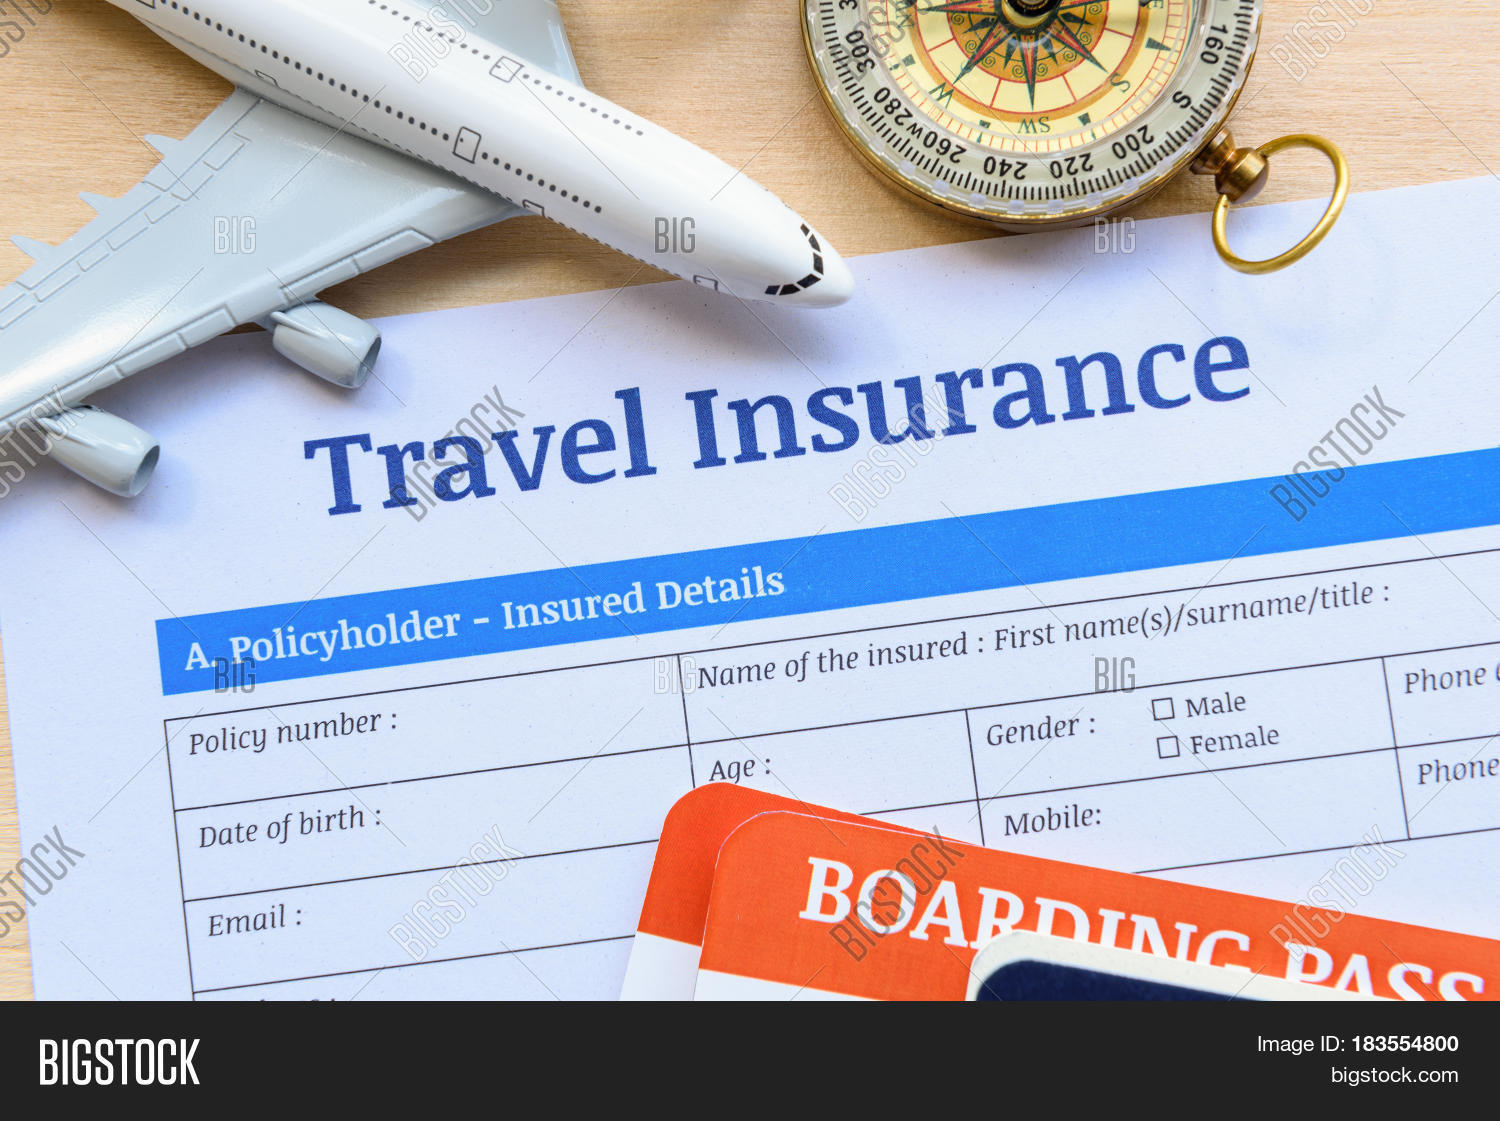 Travel insurance form image photo free trial bigstock travel insurance form put on a wood table many agent sells airplane tickets or travel thecheapjerseys Choice Image